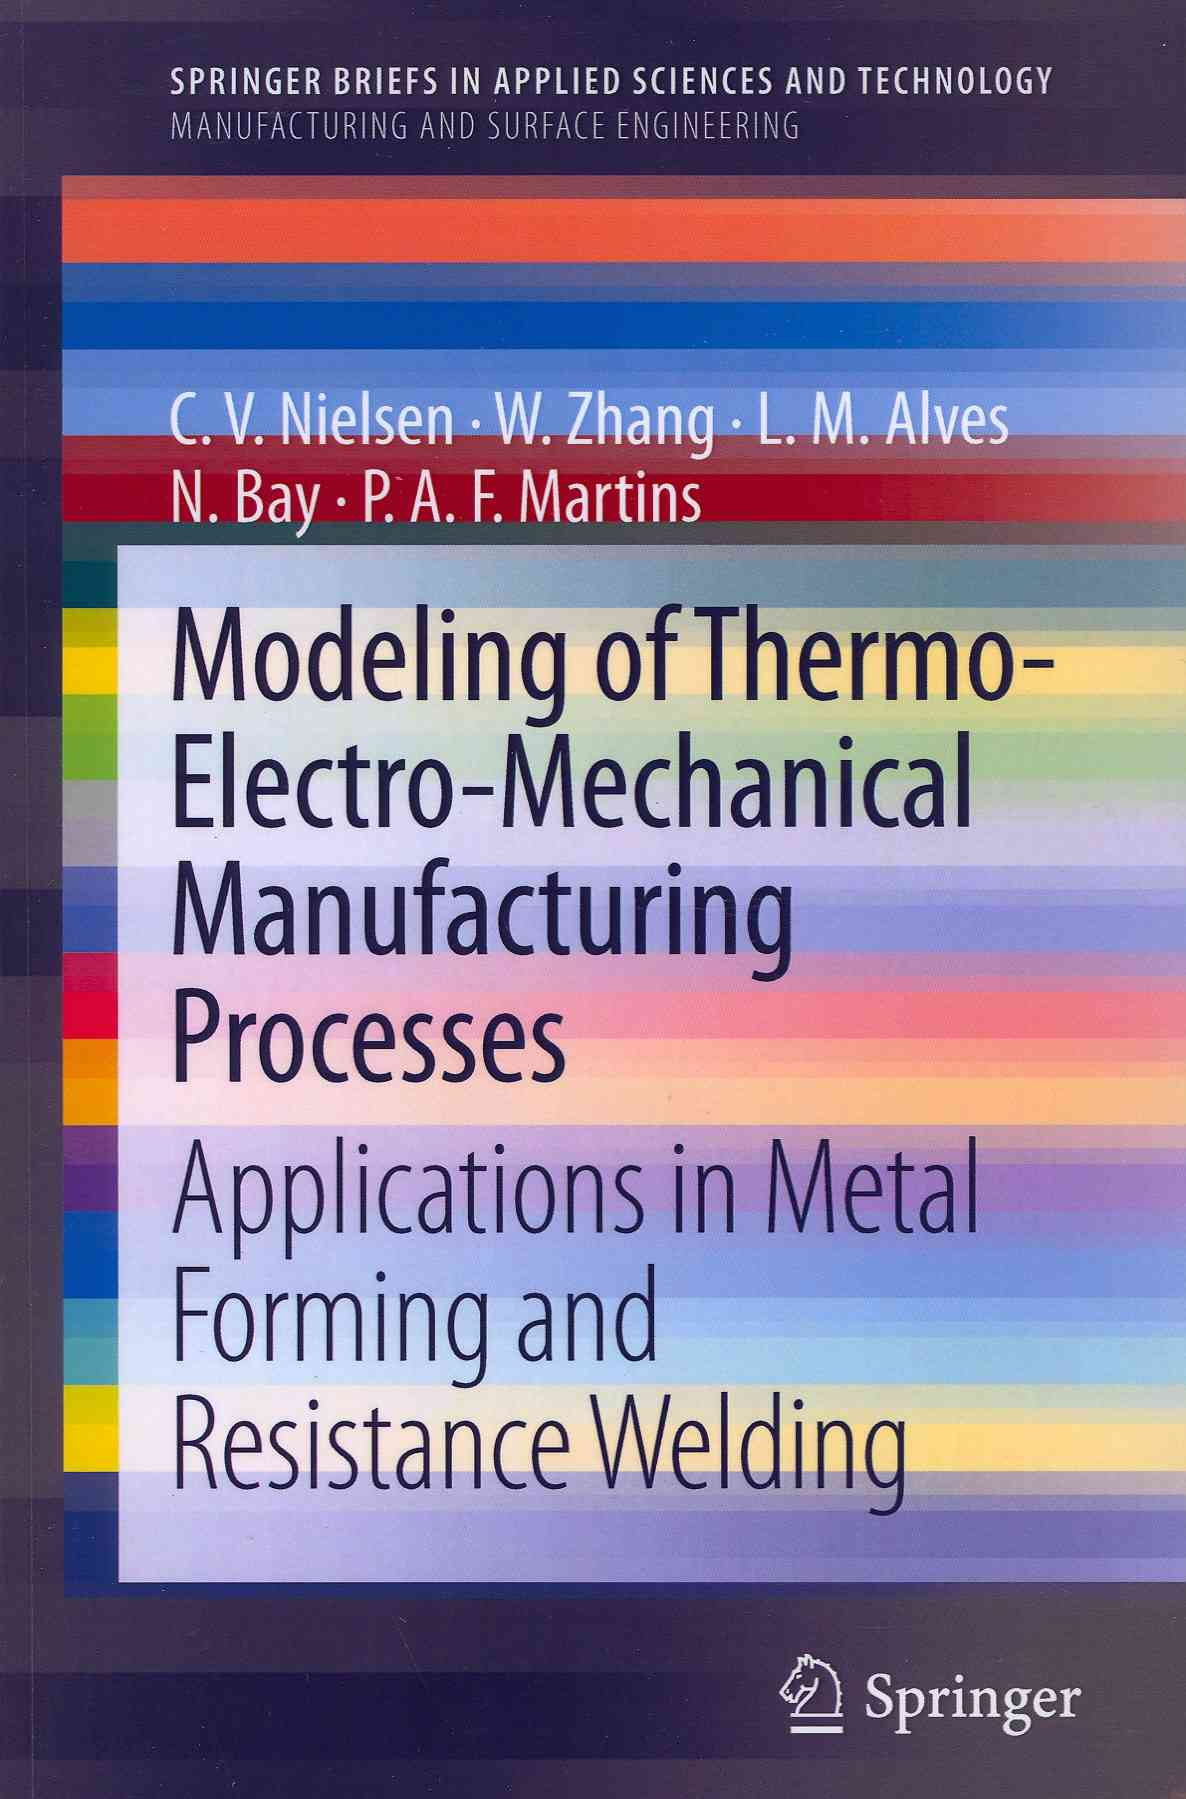 Springer Modeling of Thermo-Electro-Mechanical Manufacturing Processes: Applications in Metal Forming and Resistance Welding (2013 Editio at Sears.com